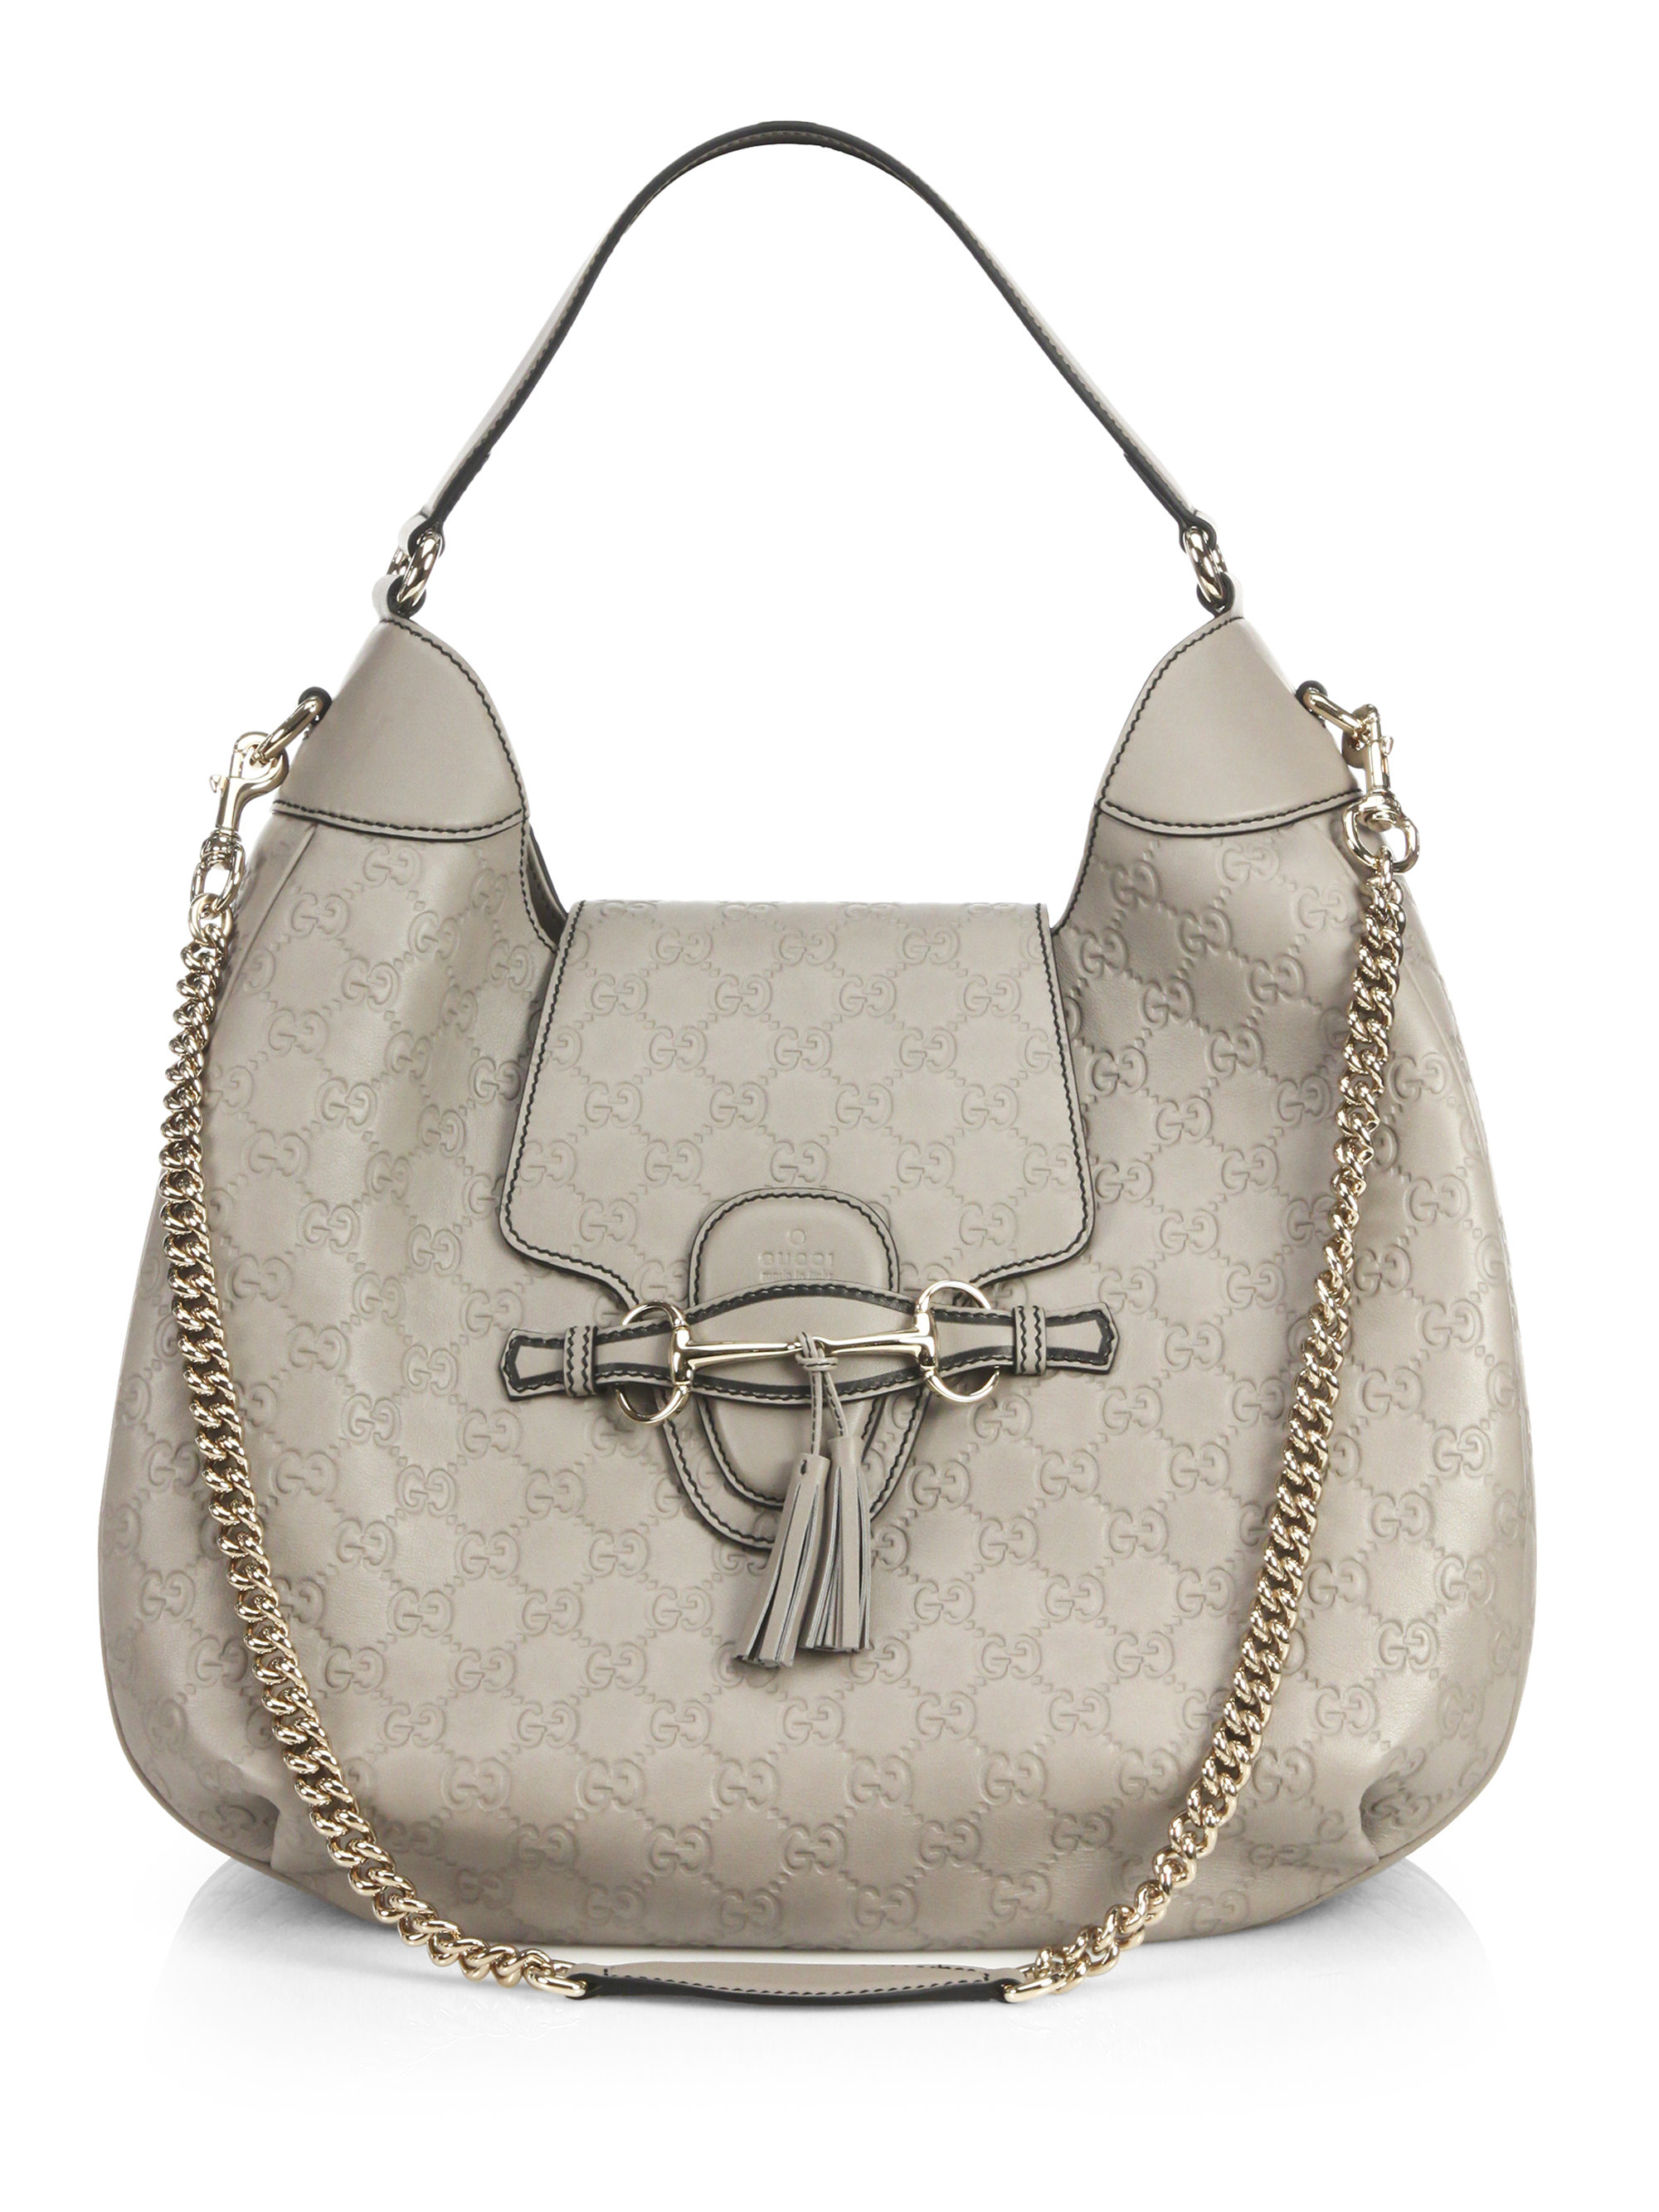 83b5493f7cd Lyst - Gucci Emily Ssima Leather Hobo Bag in Natural